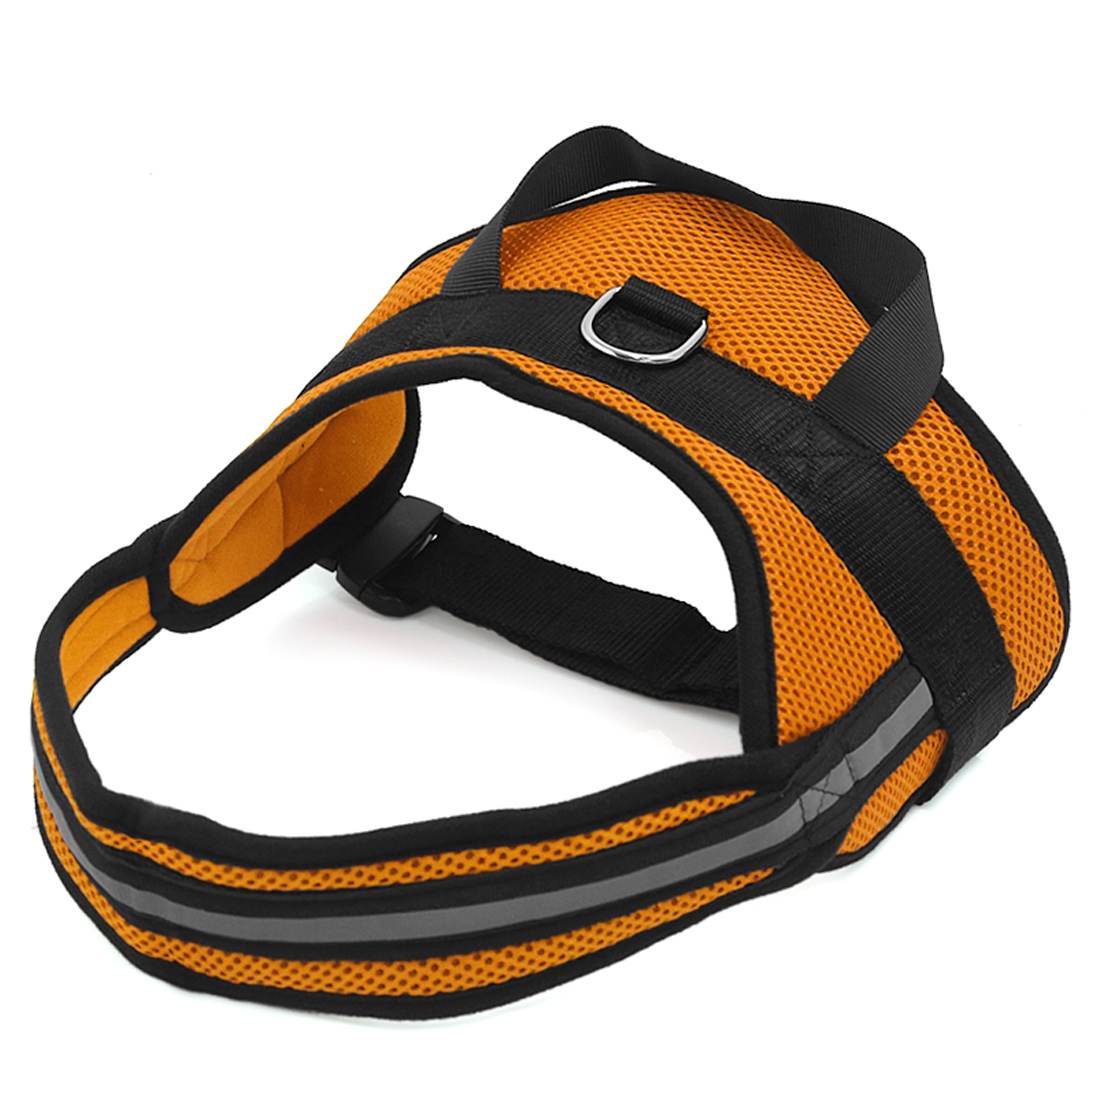 Big Dog Soft Mesh Reflective No Pull Harness Adjustable Large Pet Walk Vest Safe Control Collar Orange L